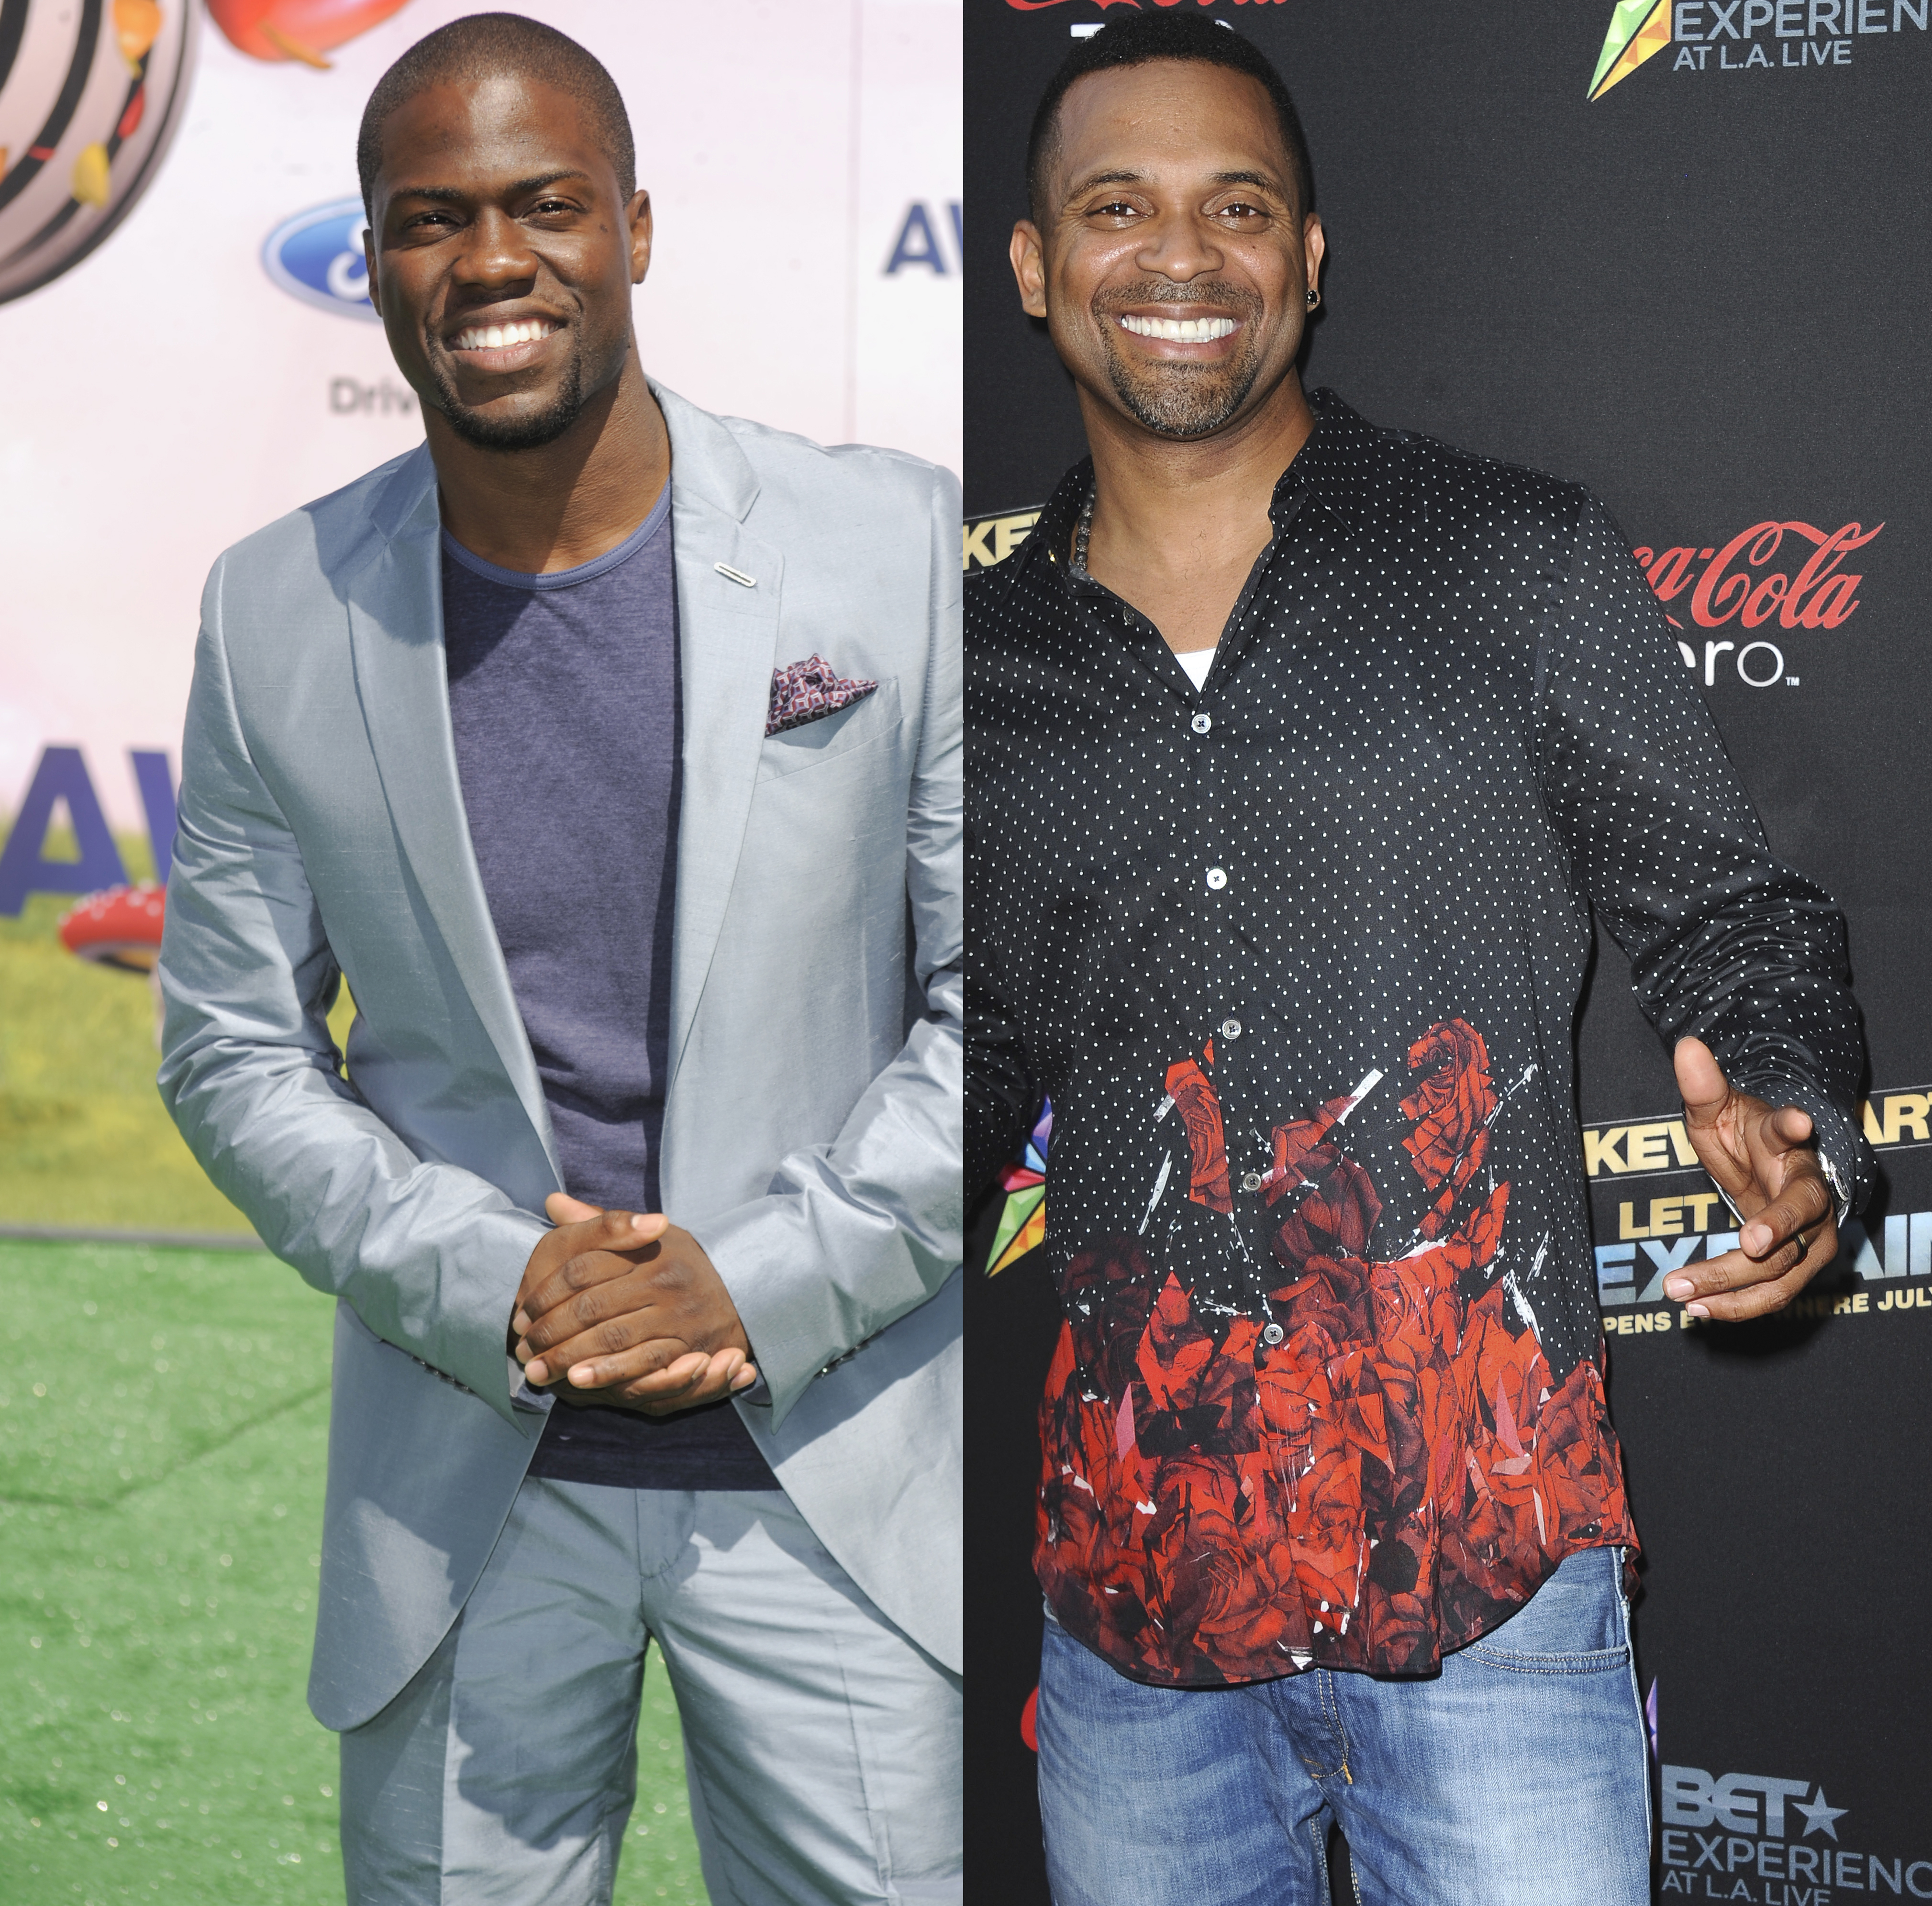 Kevin Hart vs Mike Epps